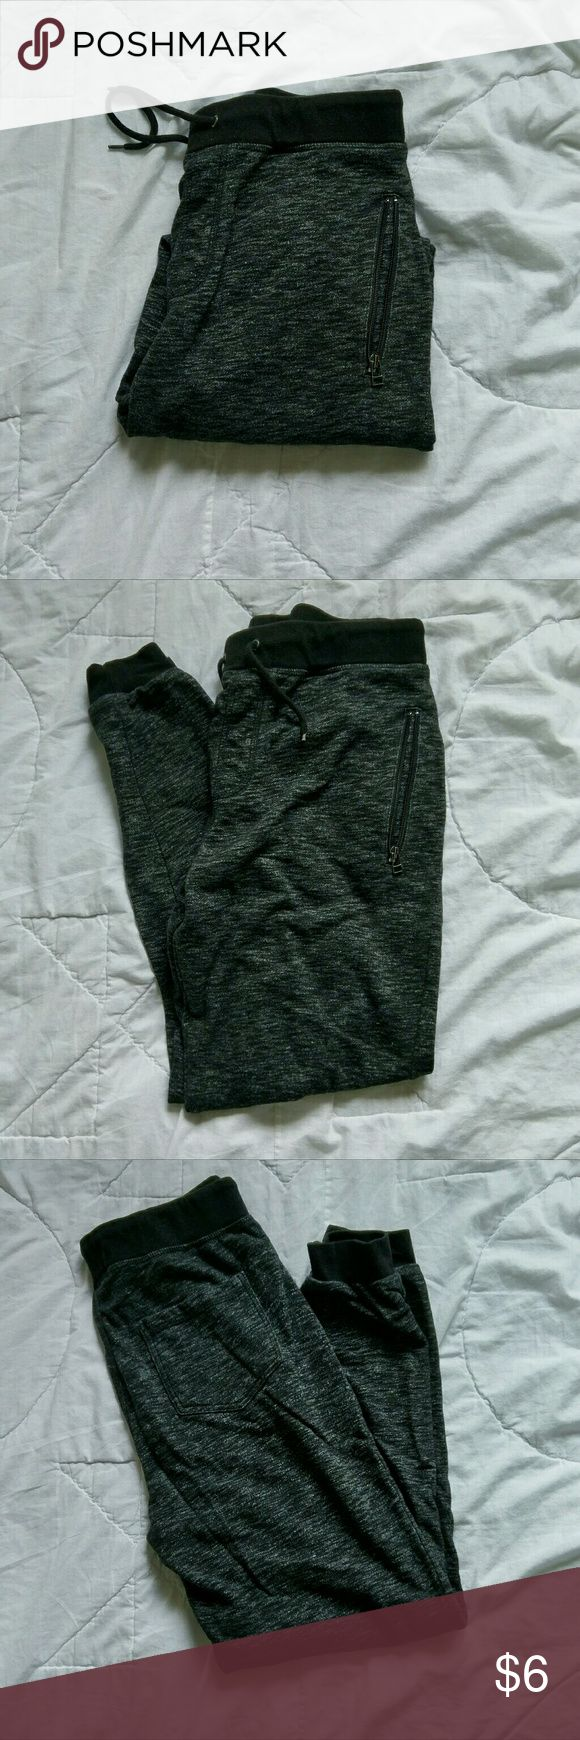 Medium Ocean Current joggers Black and white joggers that are very comfortable. They still look like new. Ocean Current Pants Sweatpants & Joggers